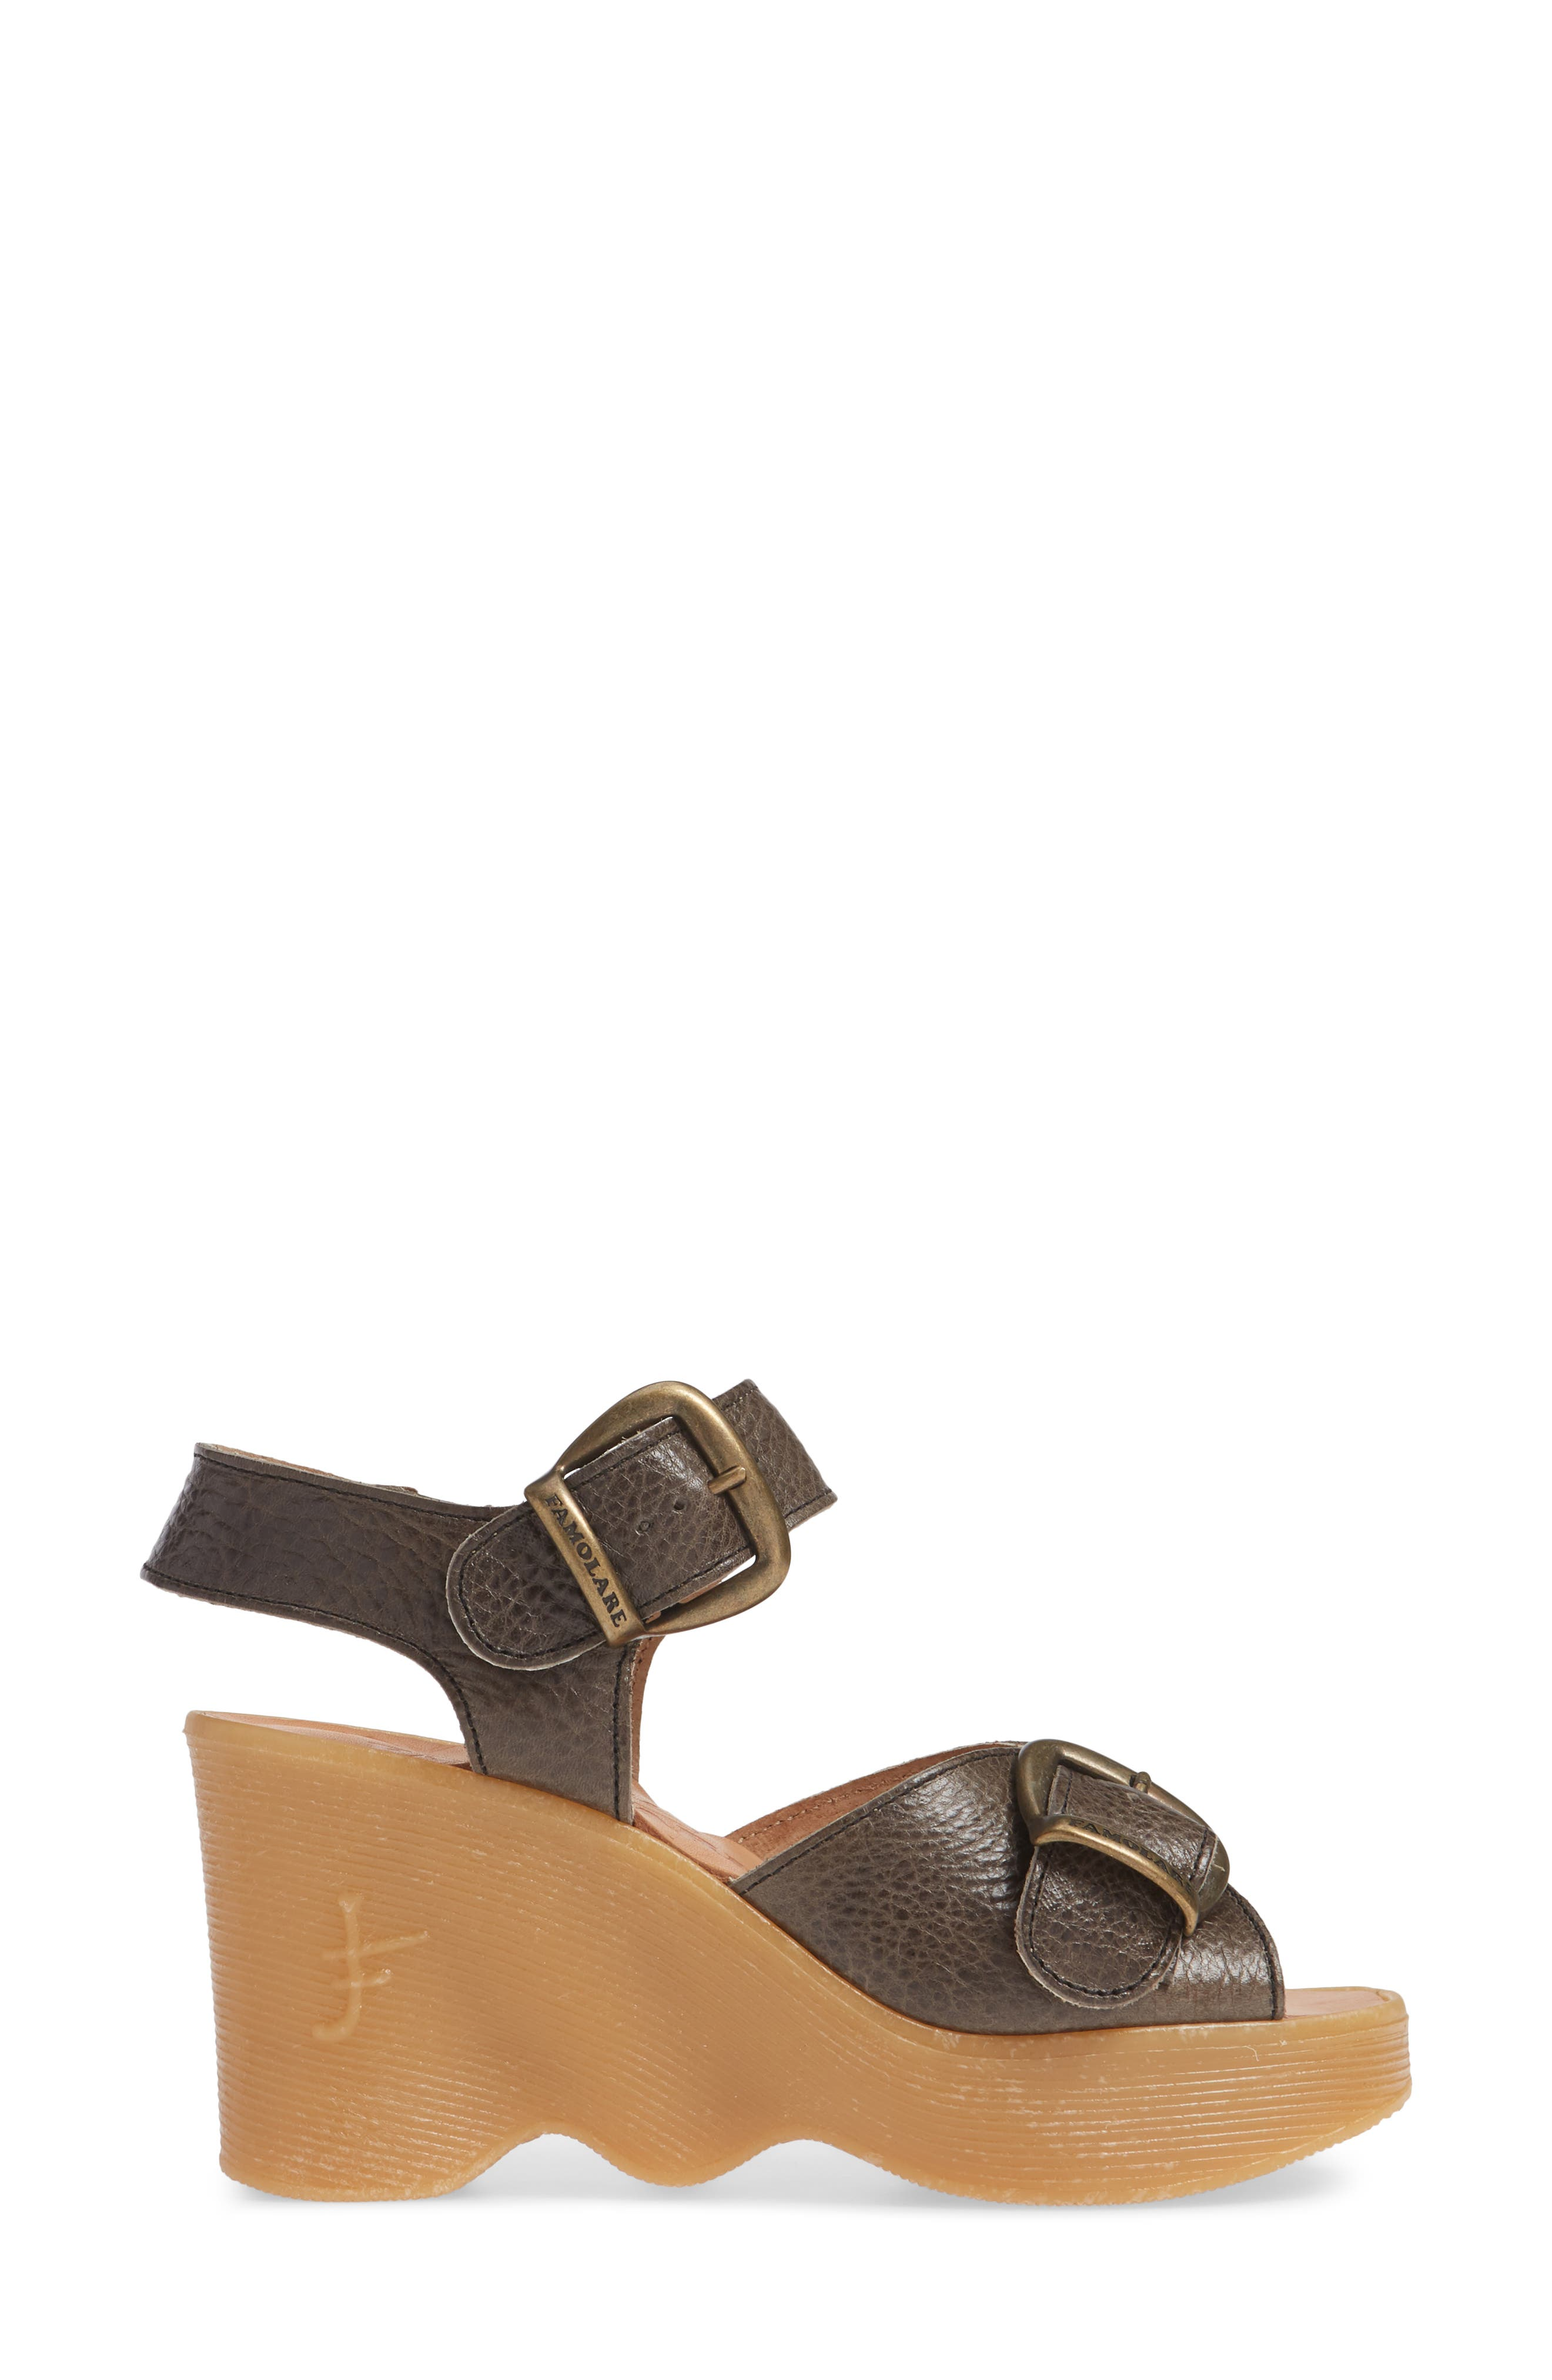 Double Vision Wedge Sandal,                             Alternate thumbnail 3, color,                             STEEL LEATHER